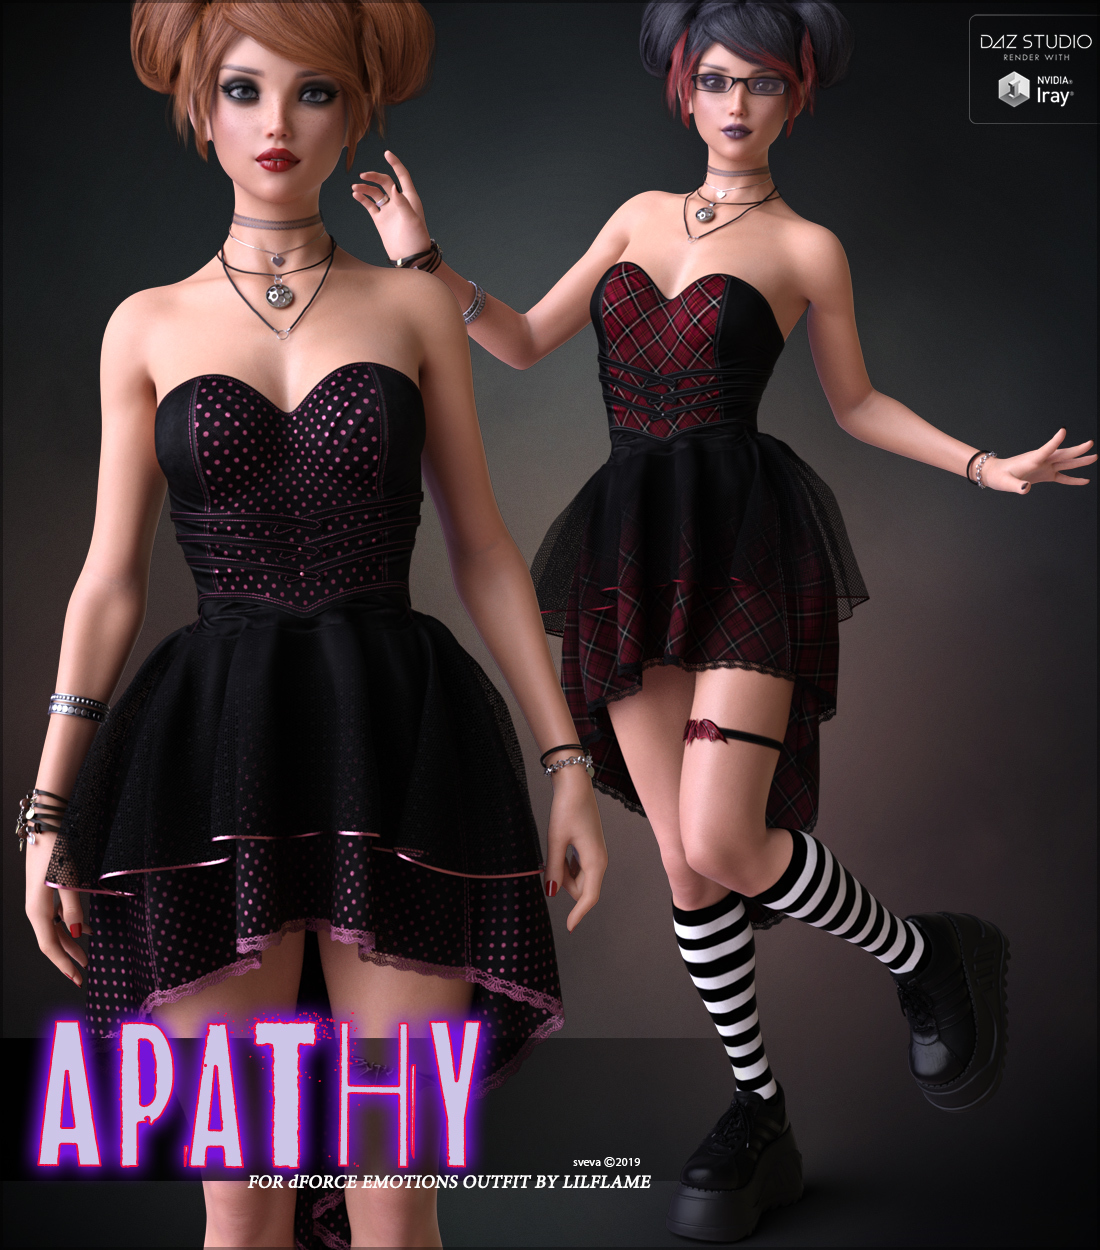 Apathy for dForce Emotions Outfit G8F by Sveva